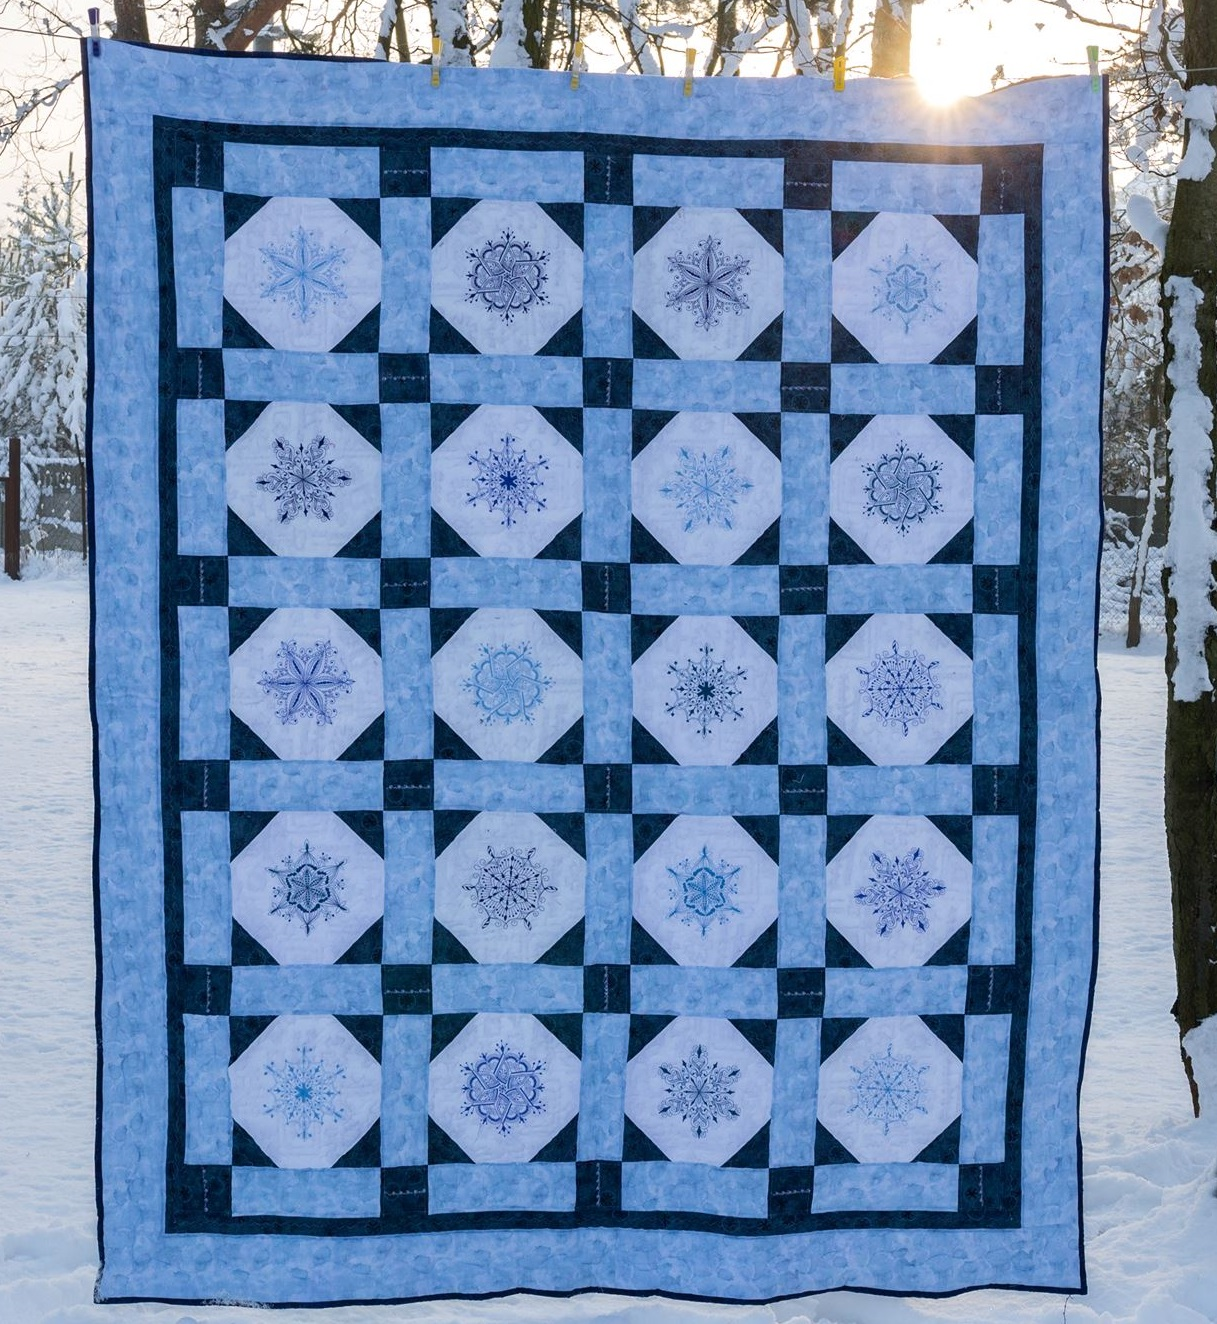 This one was made of embroidered blocks. I used a snowballed block as the setting. :)